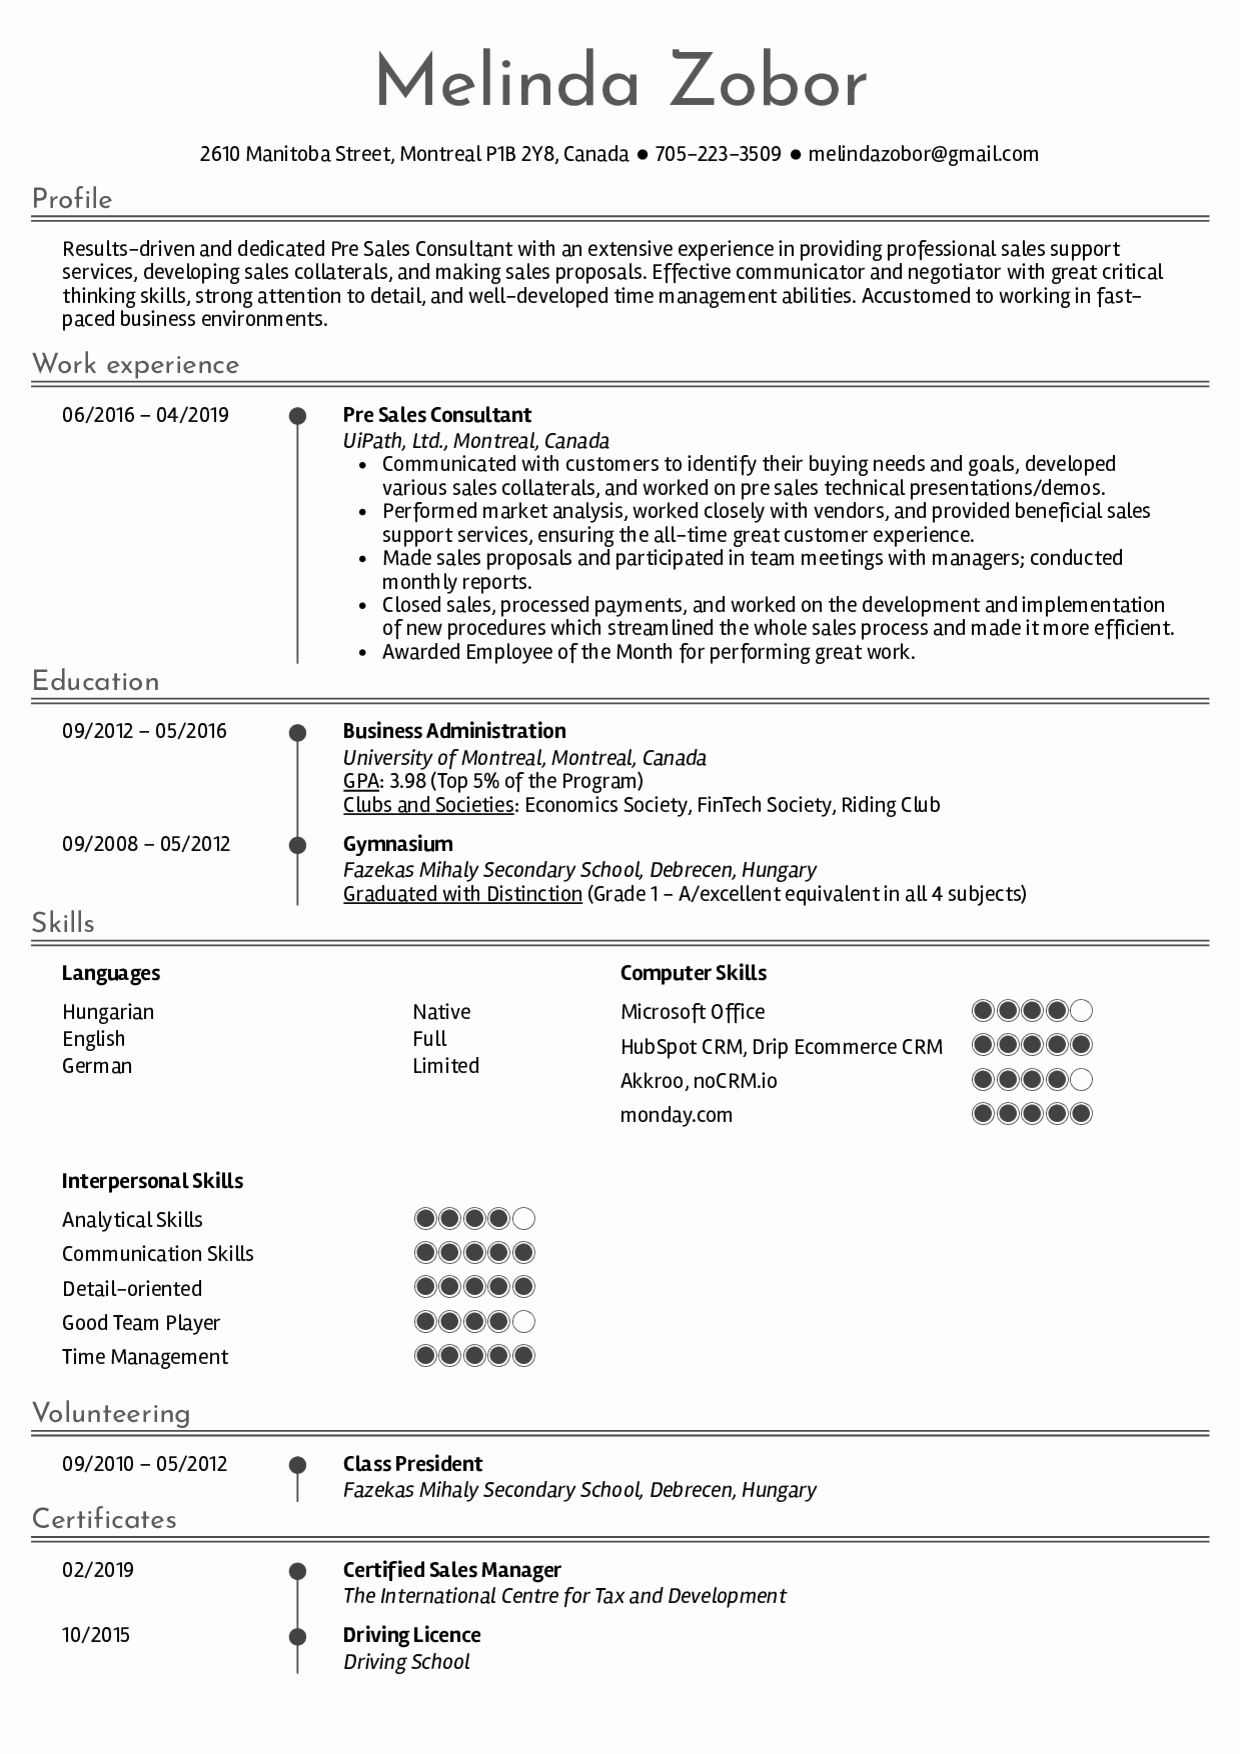 Management Consulting Resume Examples New Resume Examples By Real People Pre Sales Consultant Resume S Resume Examples Job Resume Examples Good Resume Examples